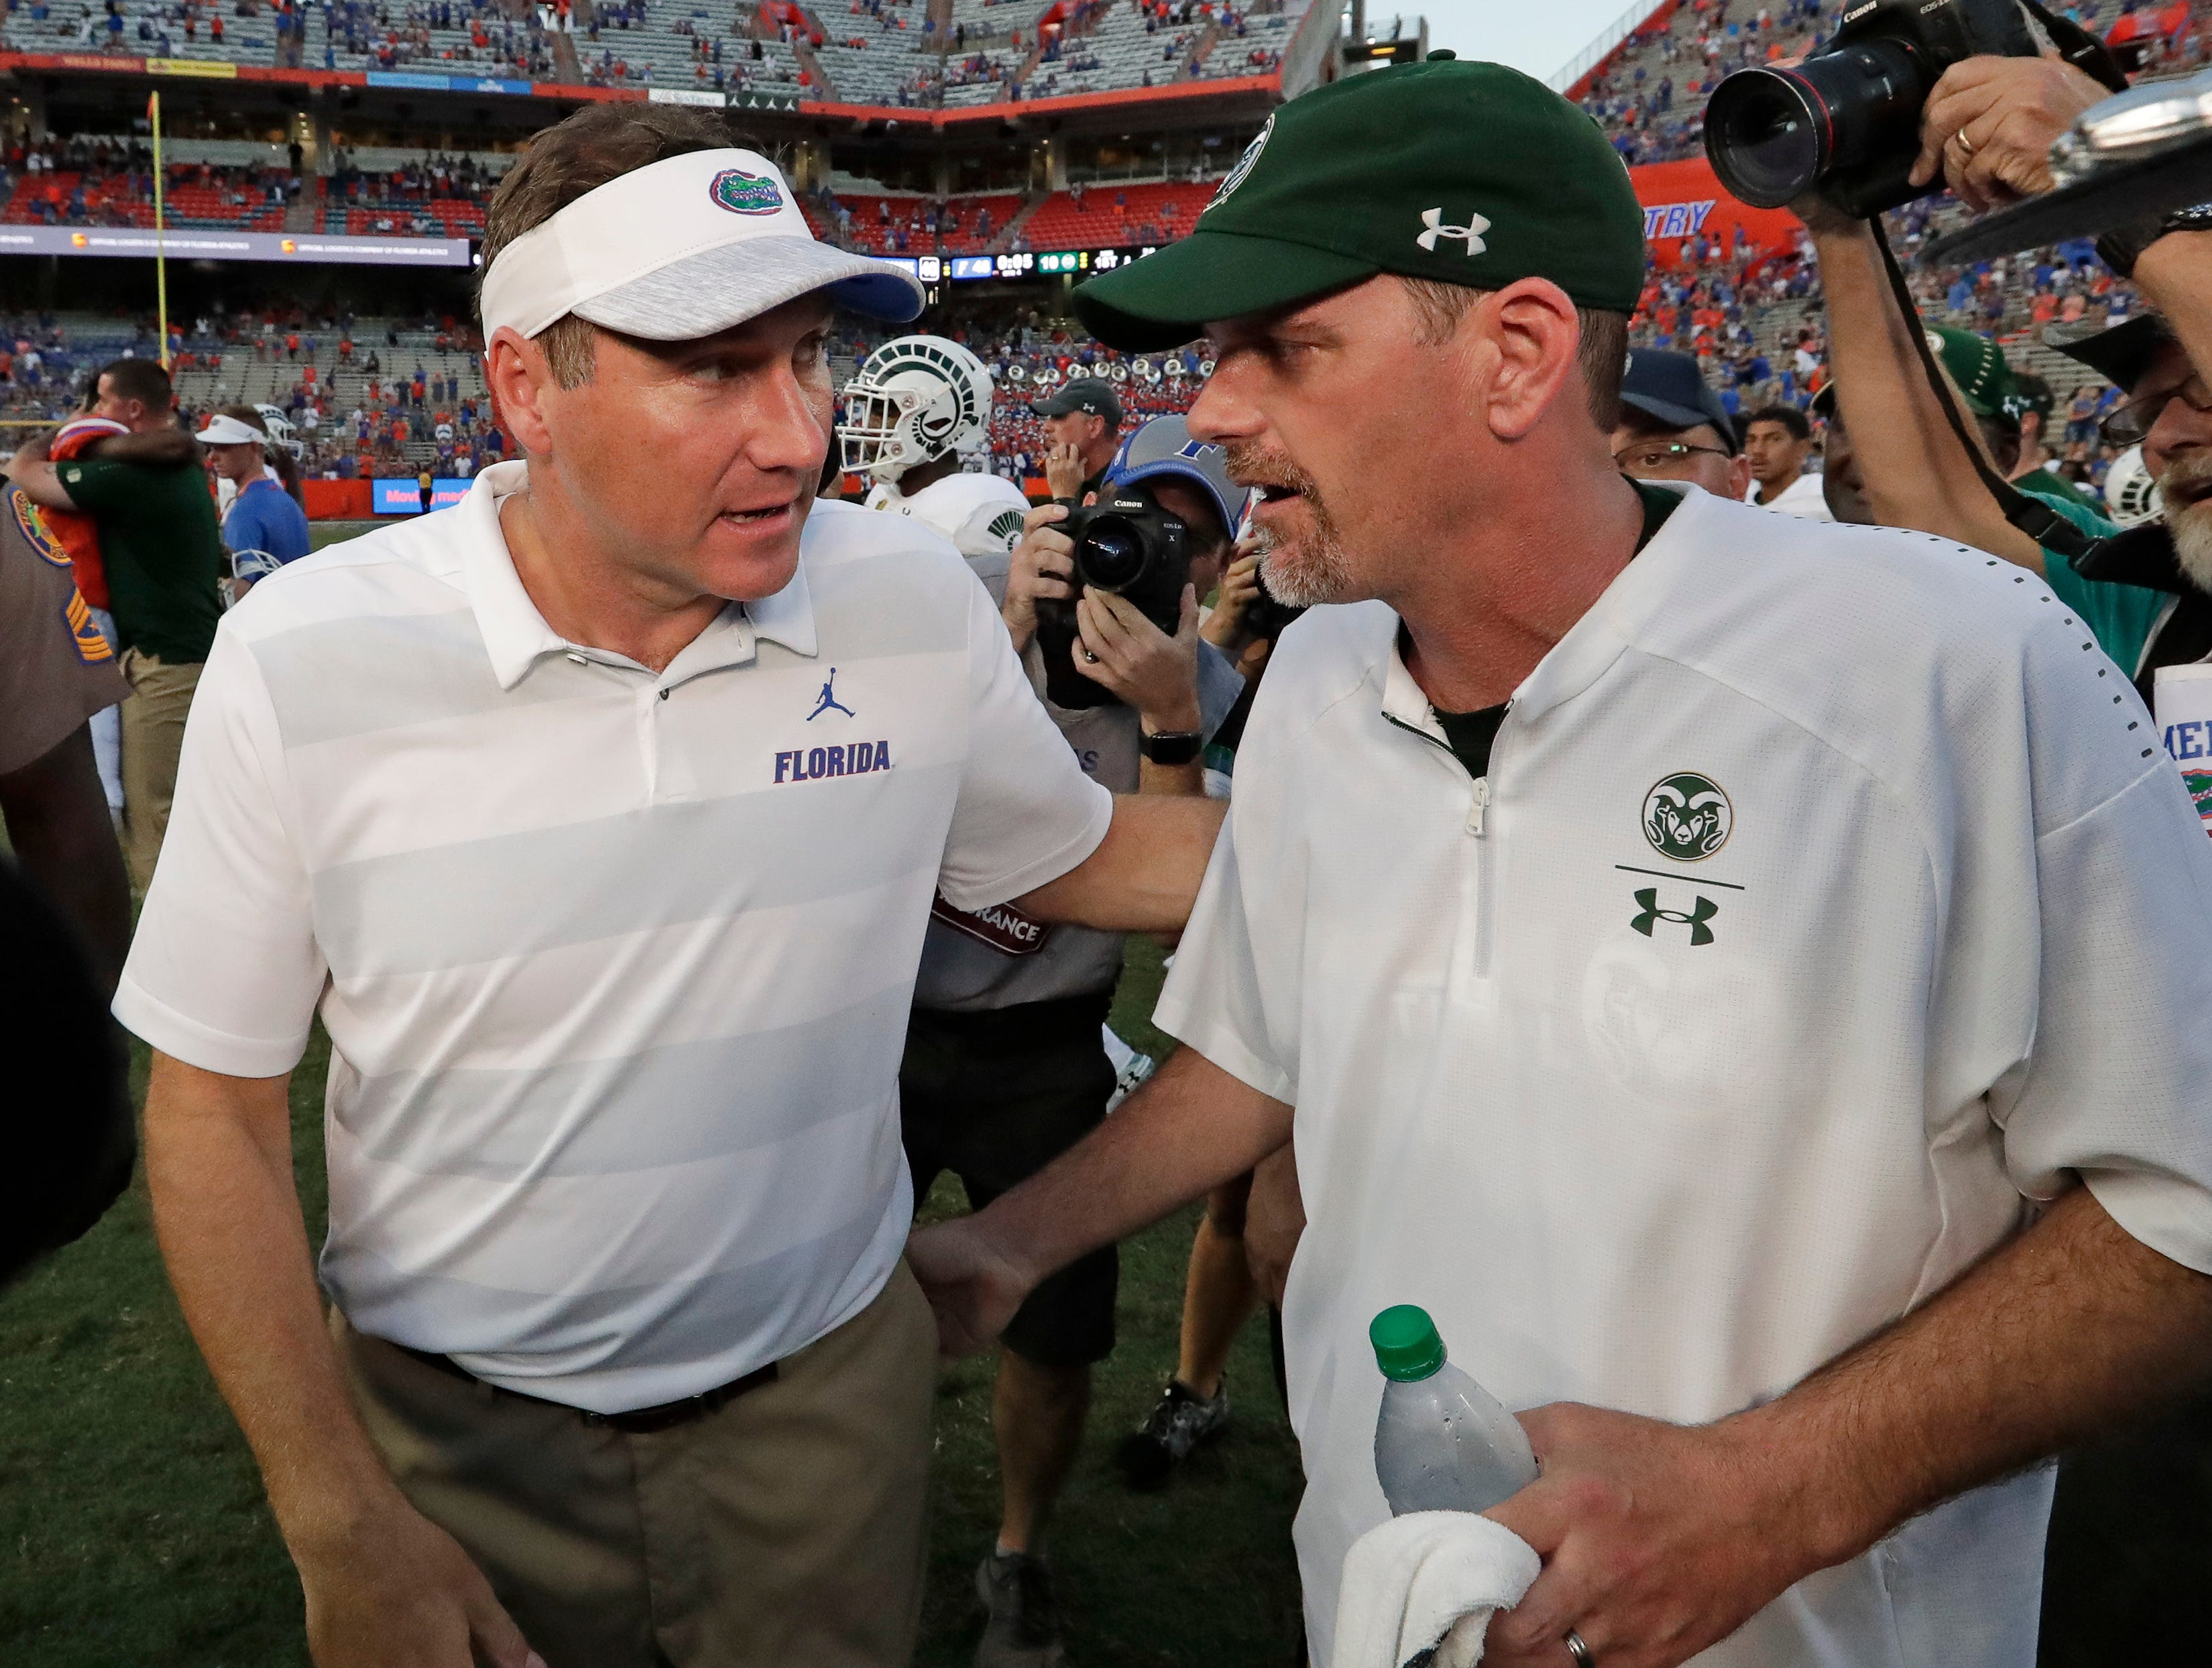 Florida head coach Dan Mullen, left, greets Colorado State head coach Mike Bobo after an NCAA college football game, Saturday, Sept. 15, 2018, in Gainesville, Fla. (AP Photo/John Raoux)